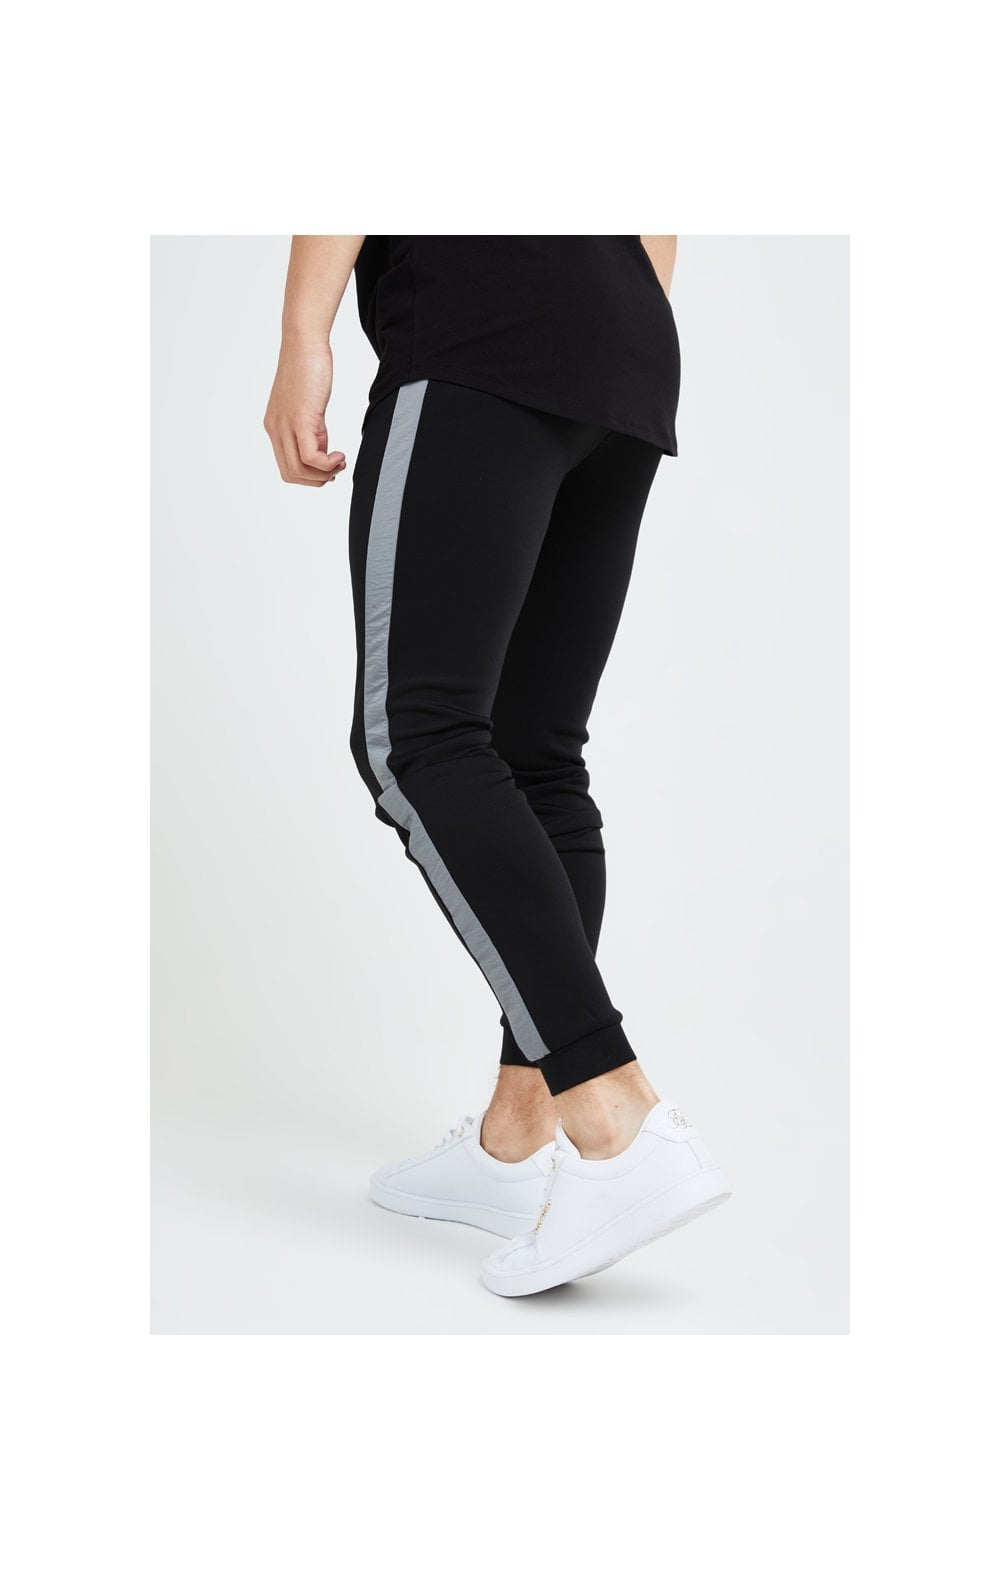 Illusive London Hybrid Joggers - Black & Grey (1)